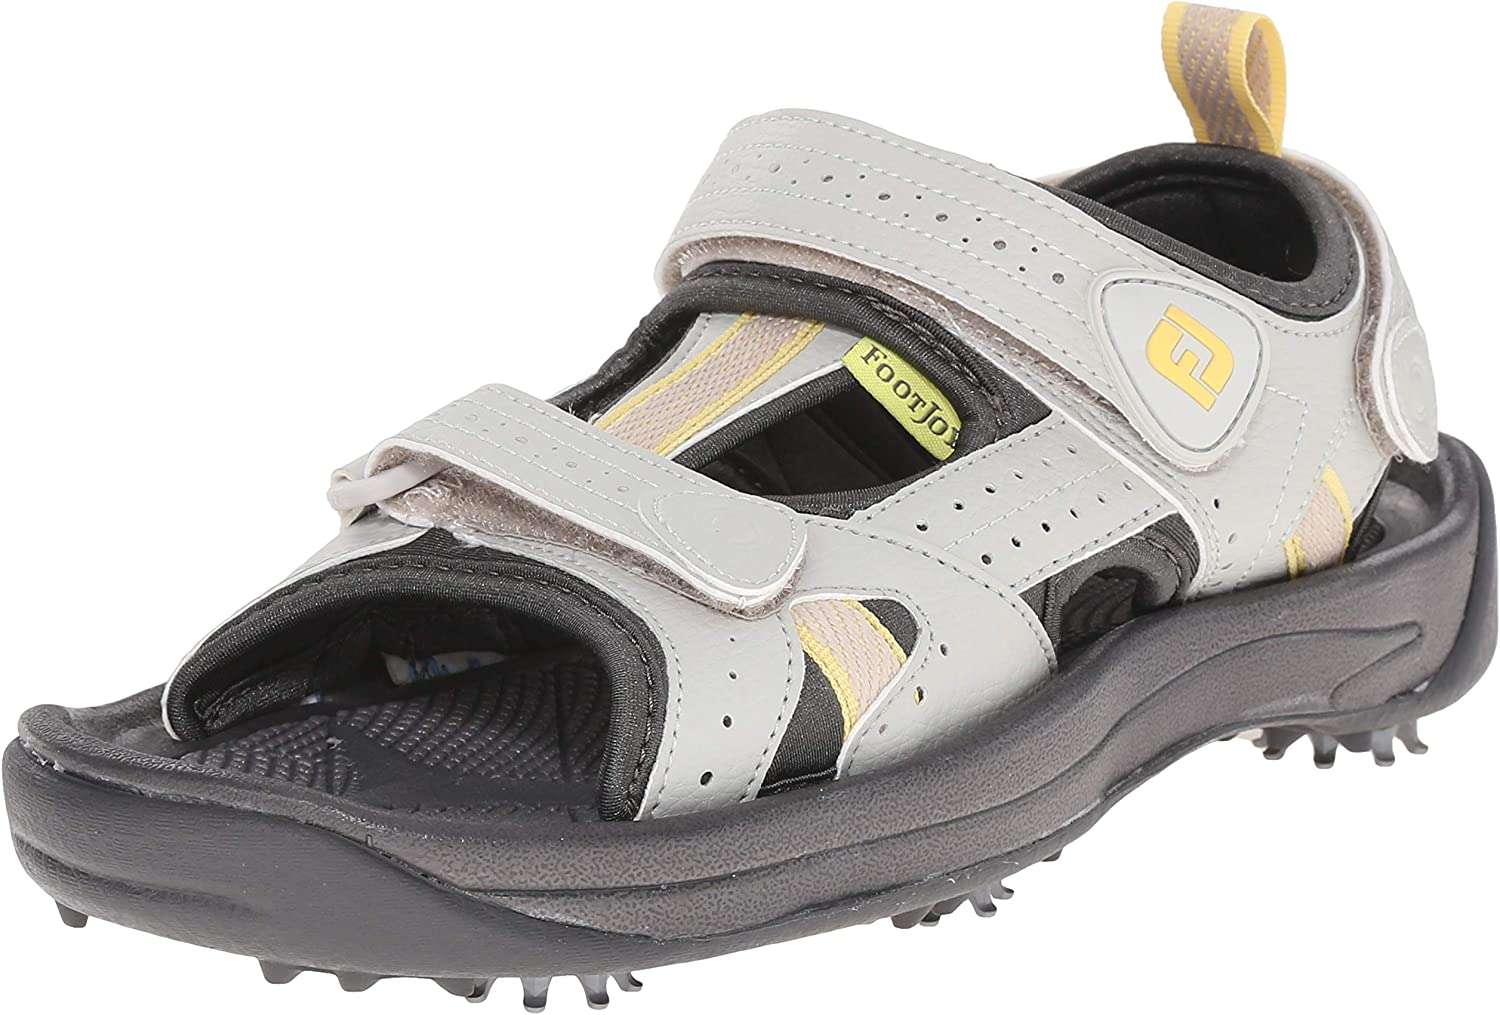 FootJoy Women s Golf Sandals Shoes